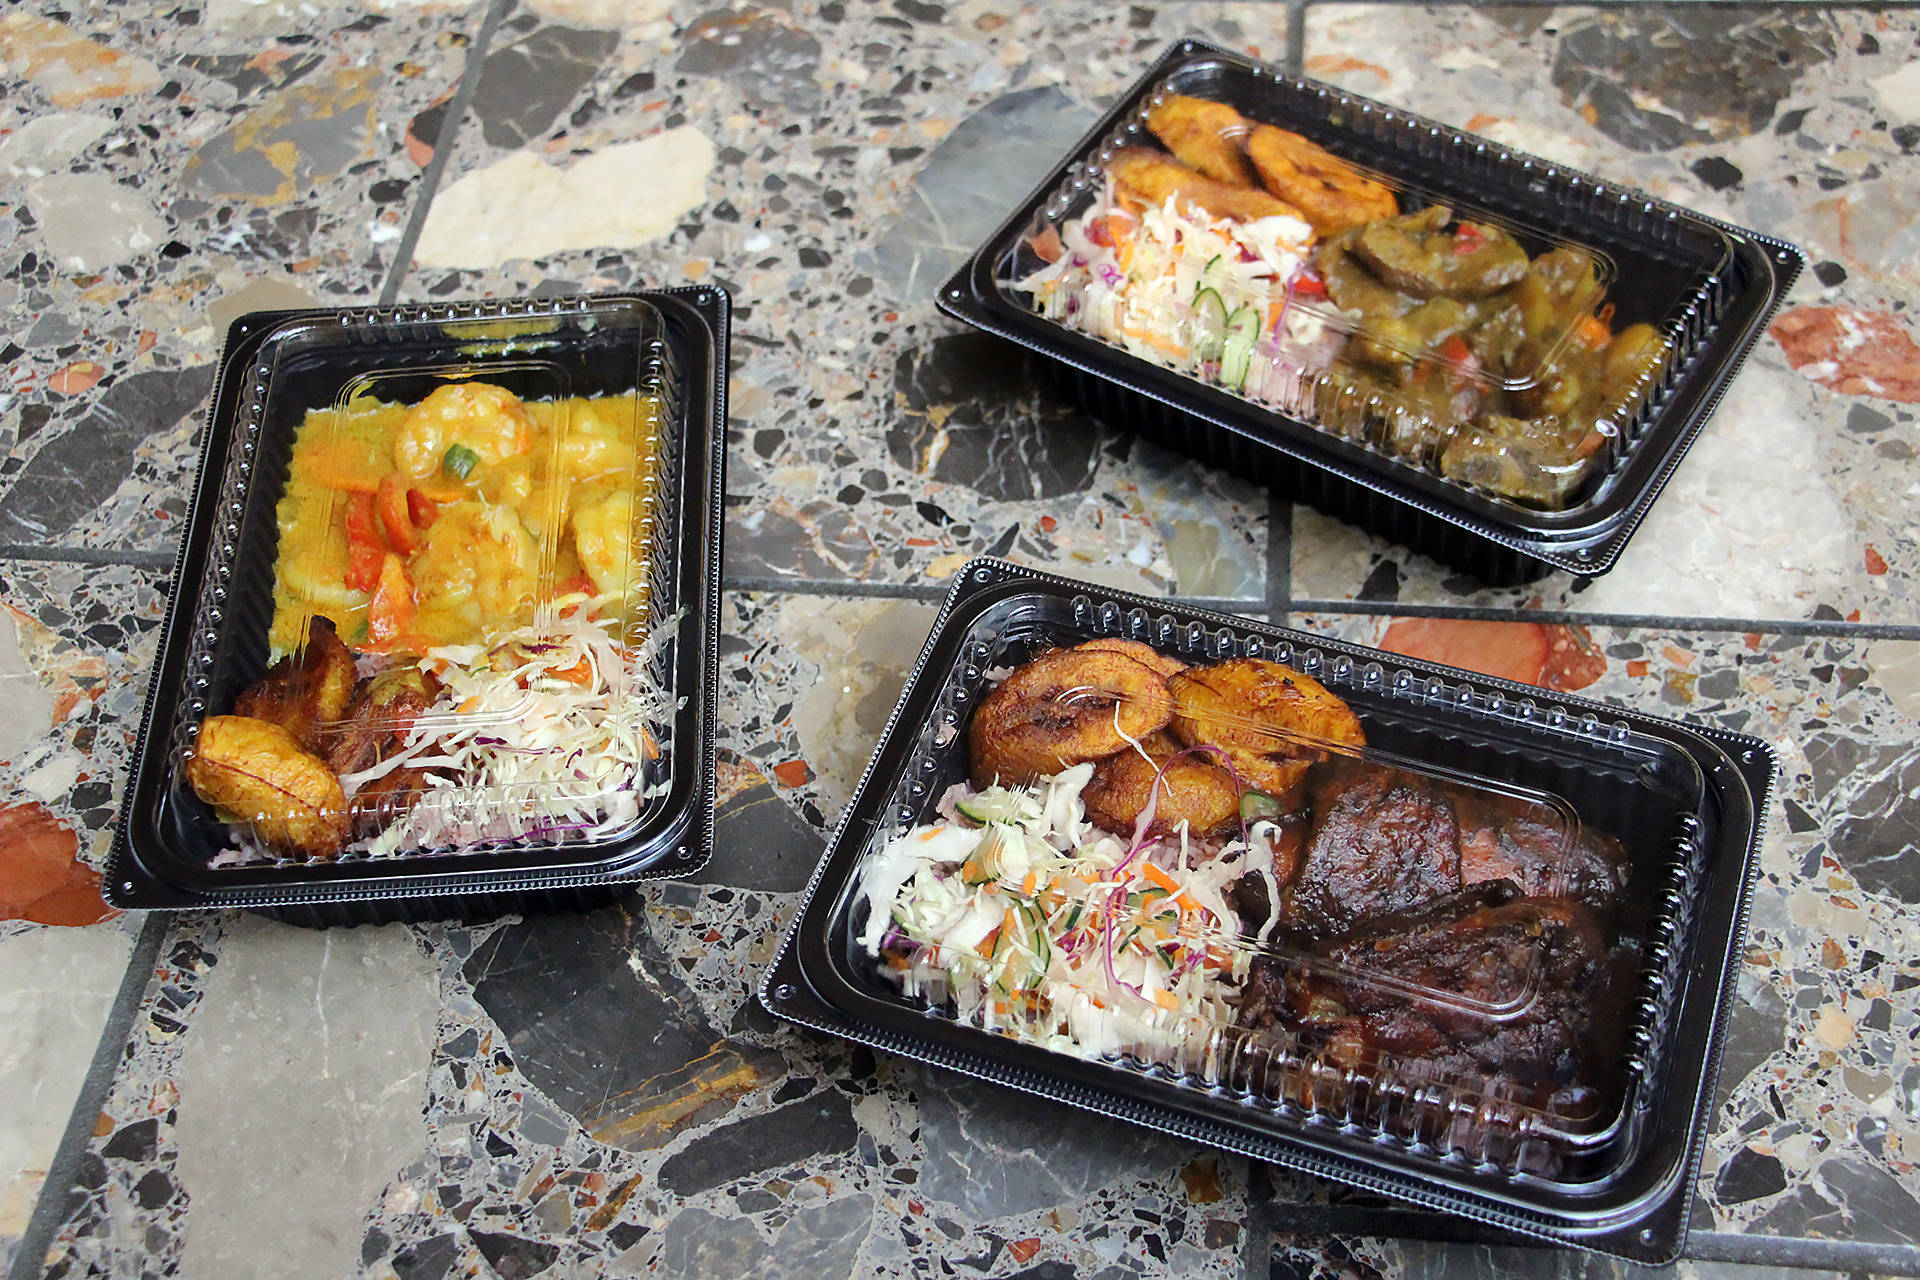 Curry Shrimp, Curry Goat and Jerk Chicken from Scotch Bonnet.